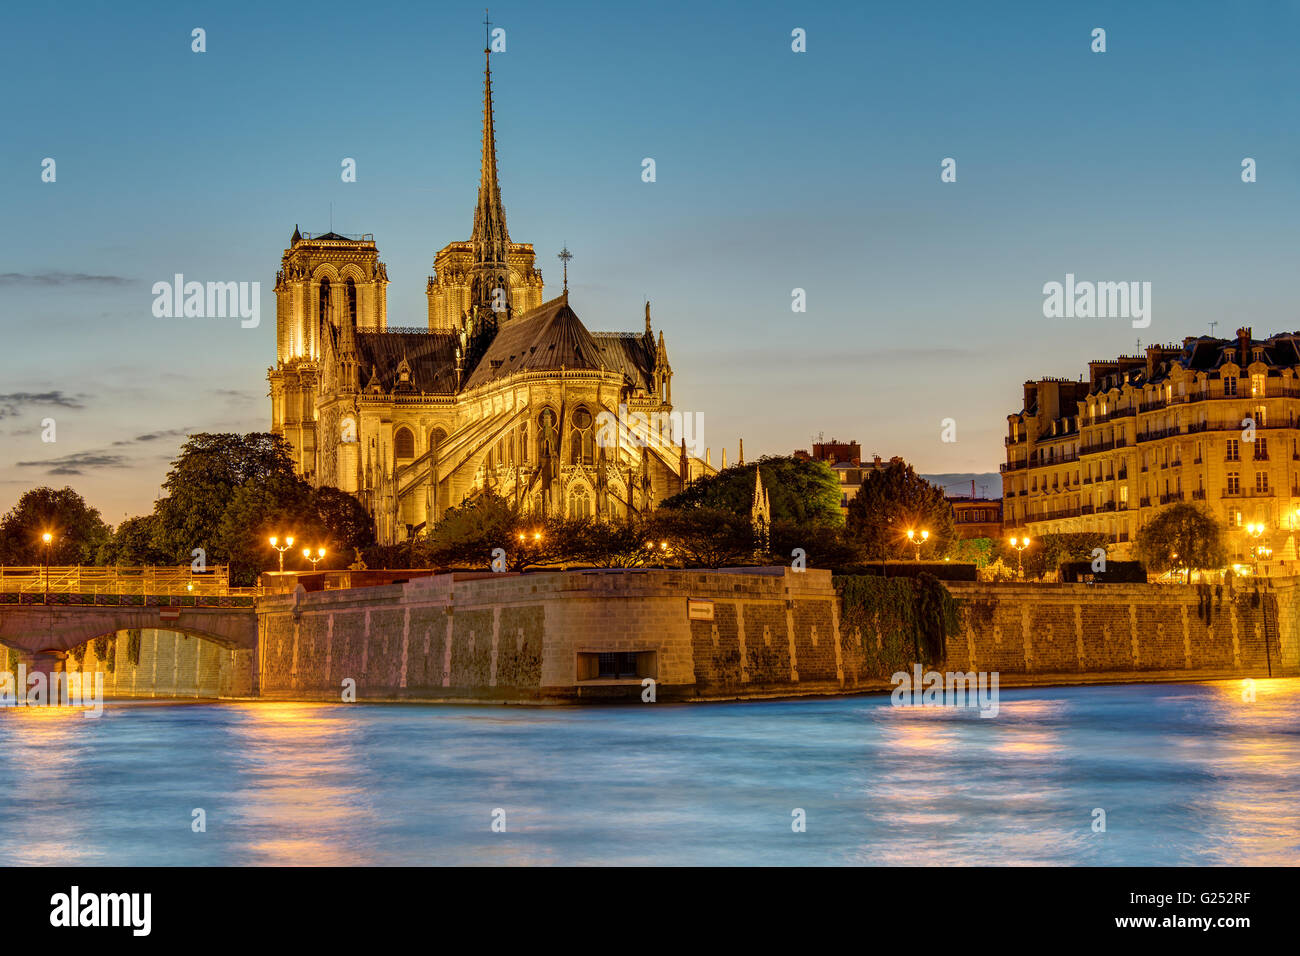 The famous Notre Dame cathedral in Paris at dawn - Stock Image